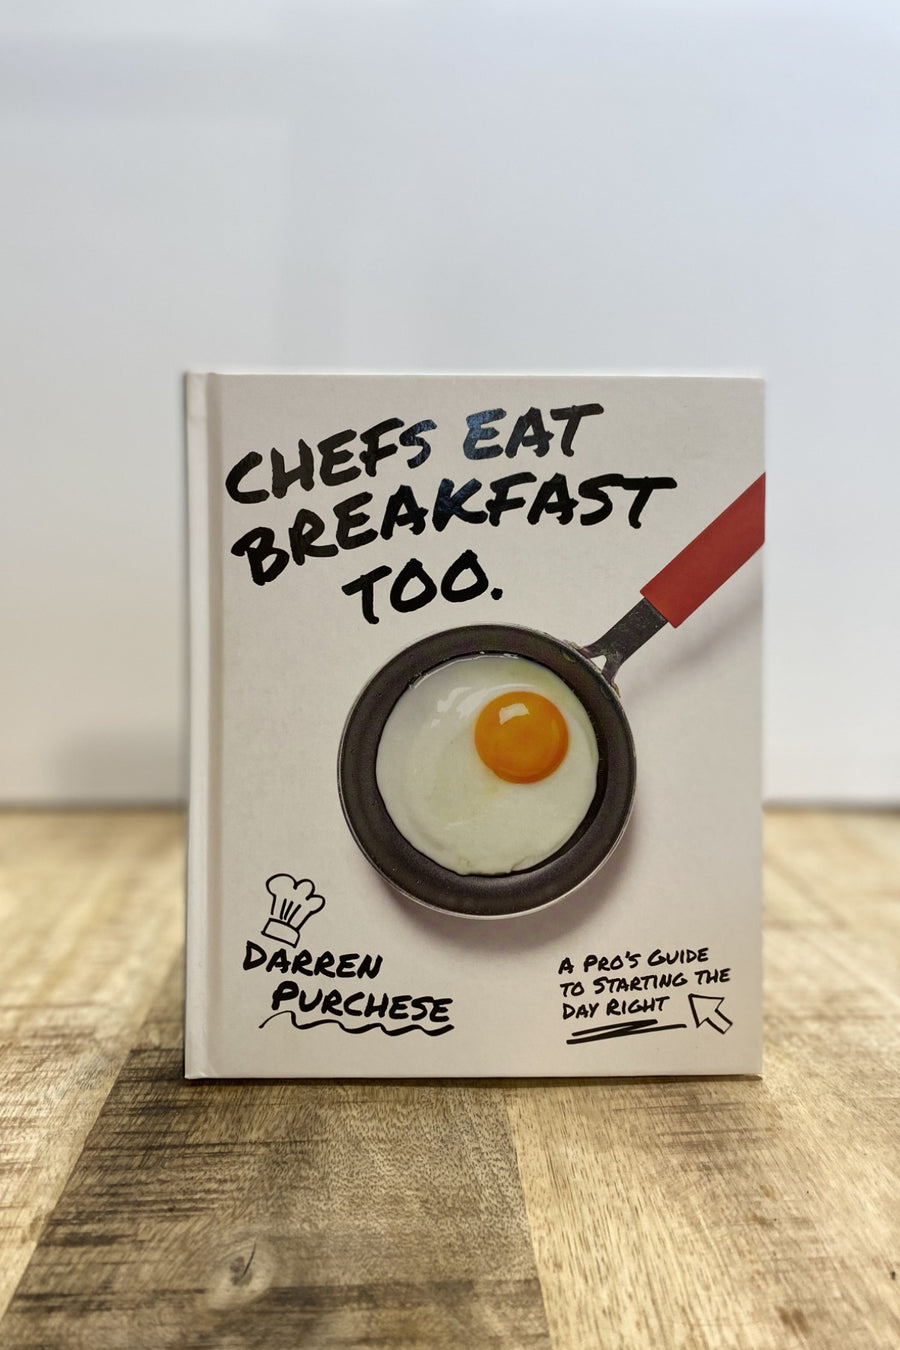 Chefs Eat Breakfast Too - Shop Online At Mookah - mookah.com.au